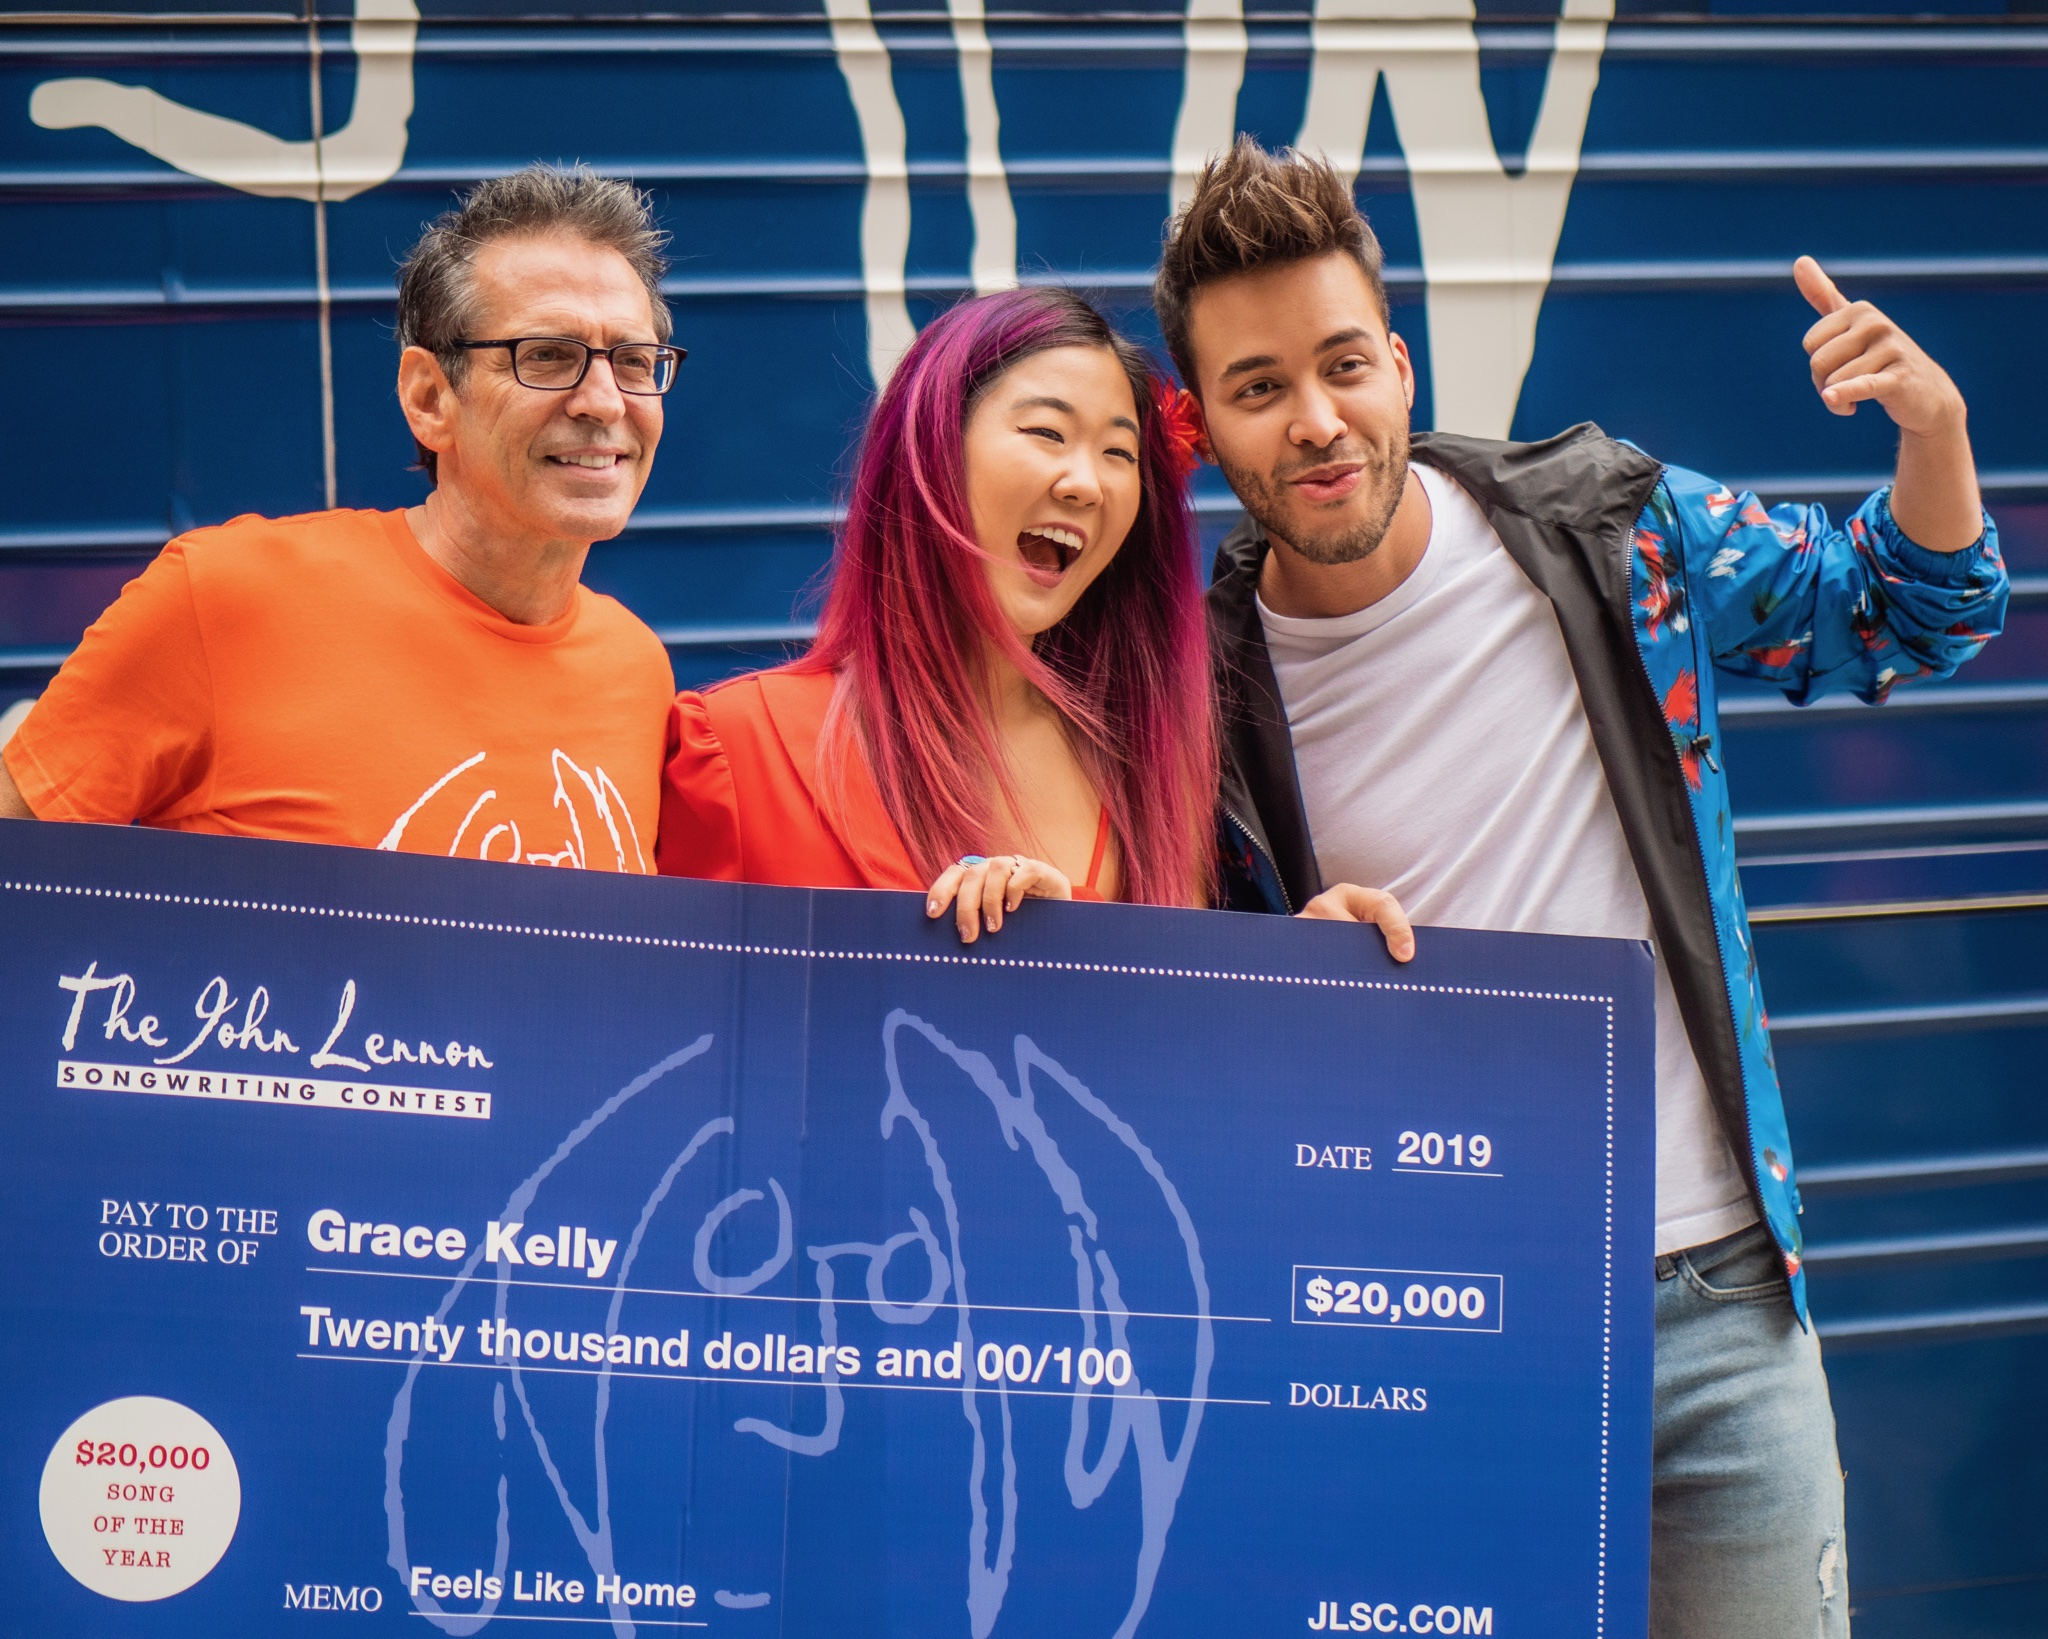 Grace Kelly Awarded $20,000 for Winning John Lennon Songwriting Contest  SONG OF THE YEAR in New York City